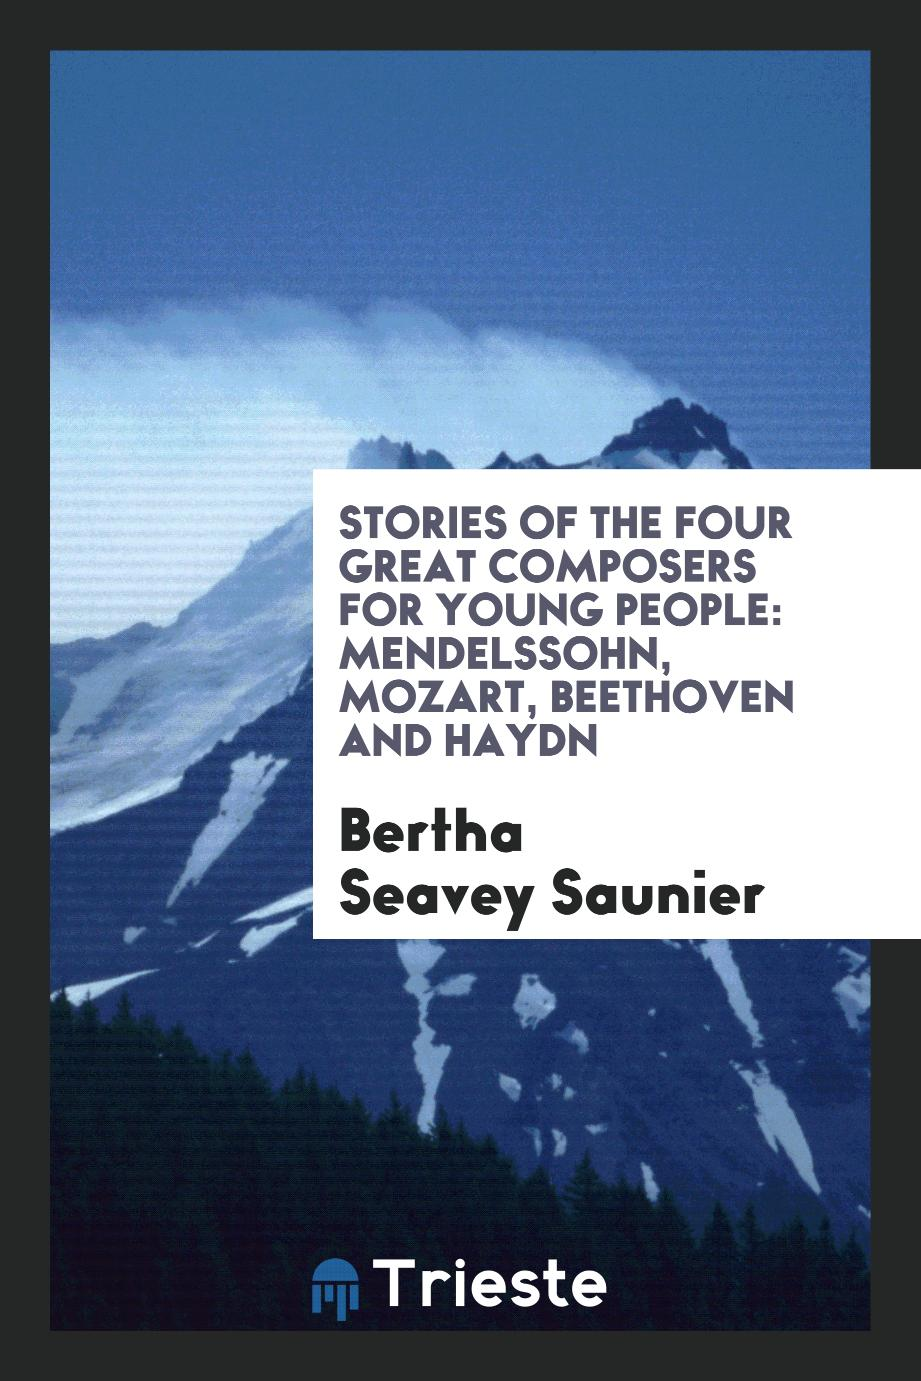 Stories of the Four Great Composers for Young People: Mendelssohn, Mozart, Beethoven and Haydn